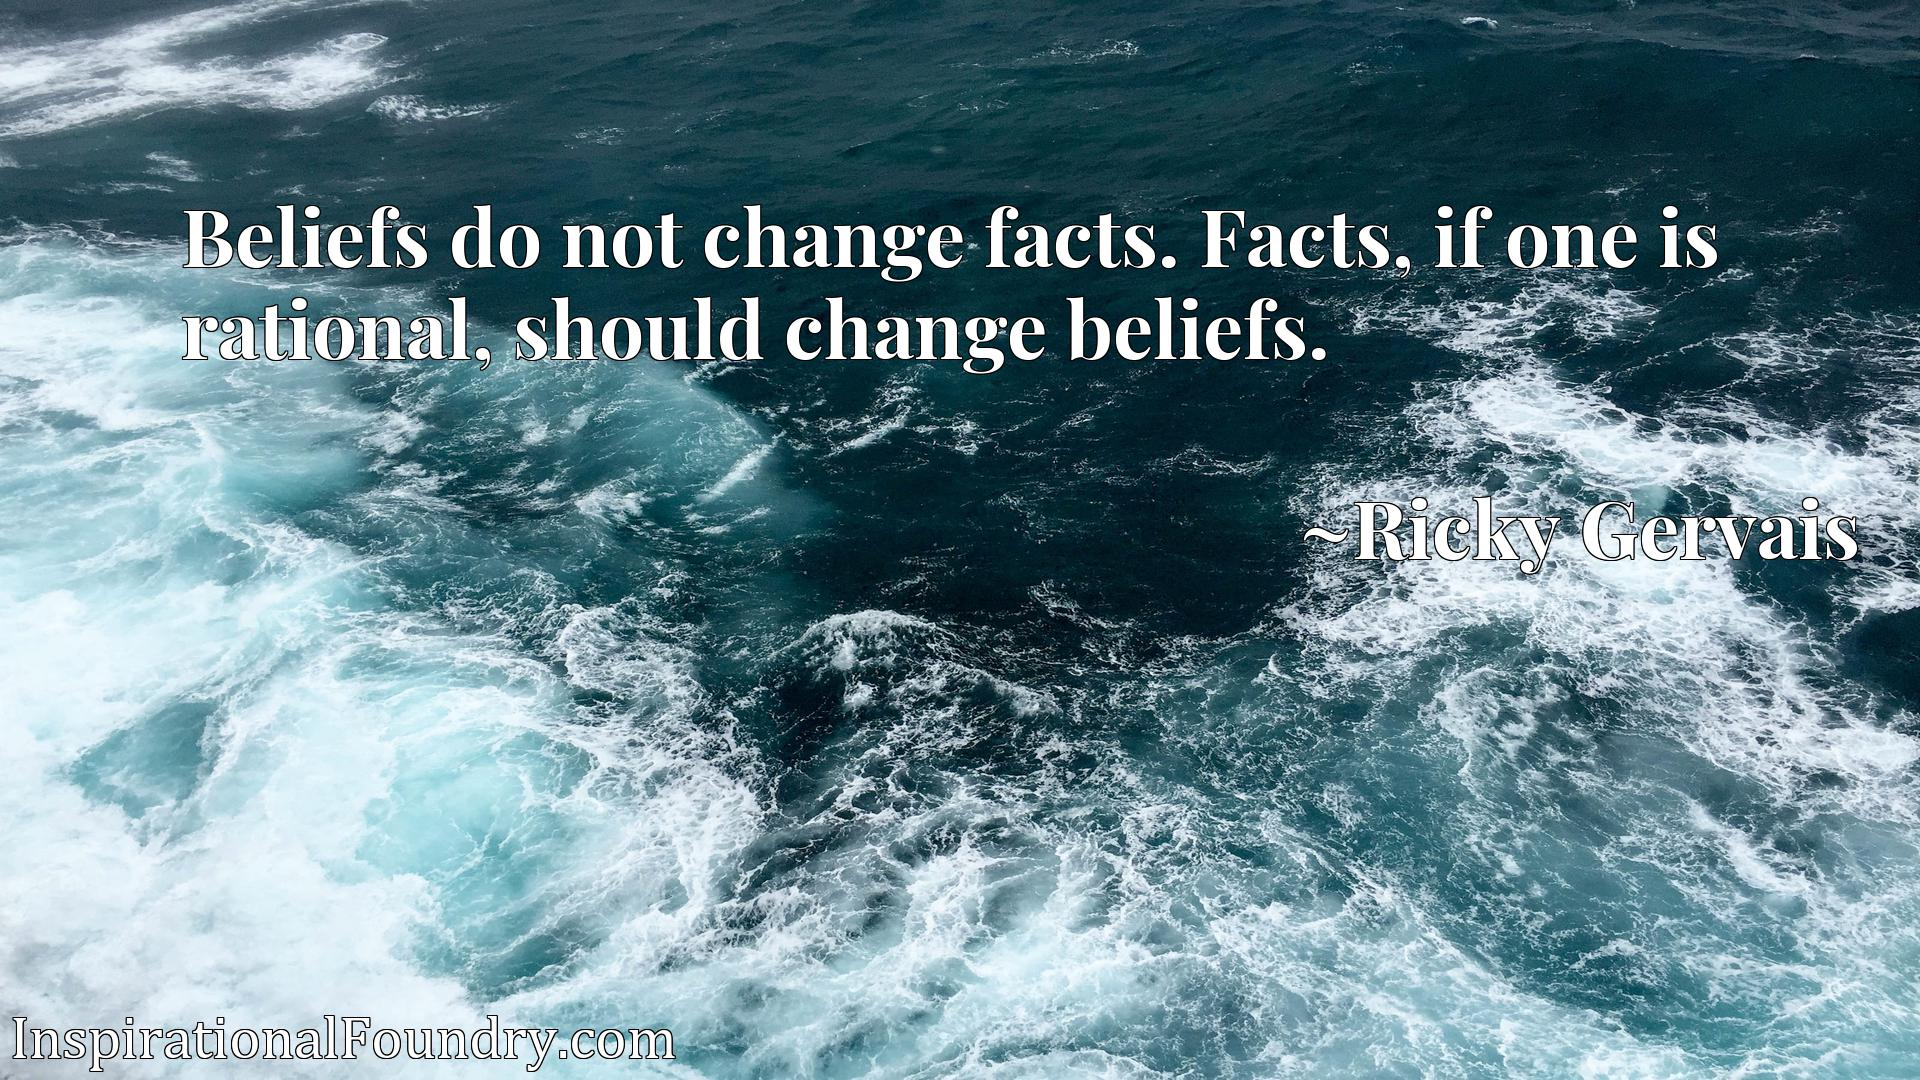 Beliefs do not change facts. Facts, if one is rational, should change beliefs.